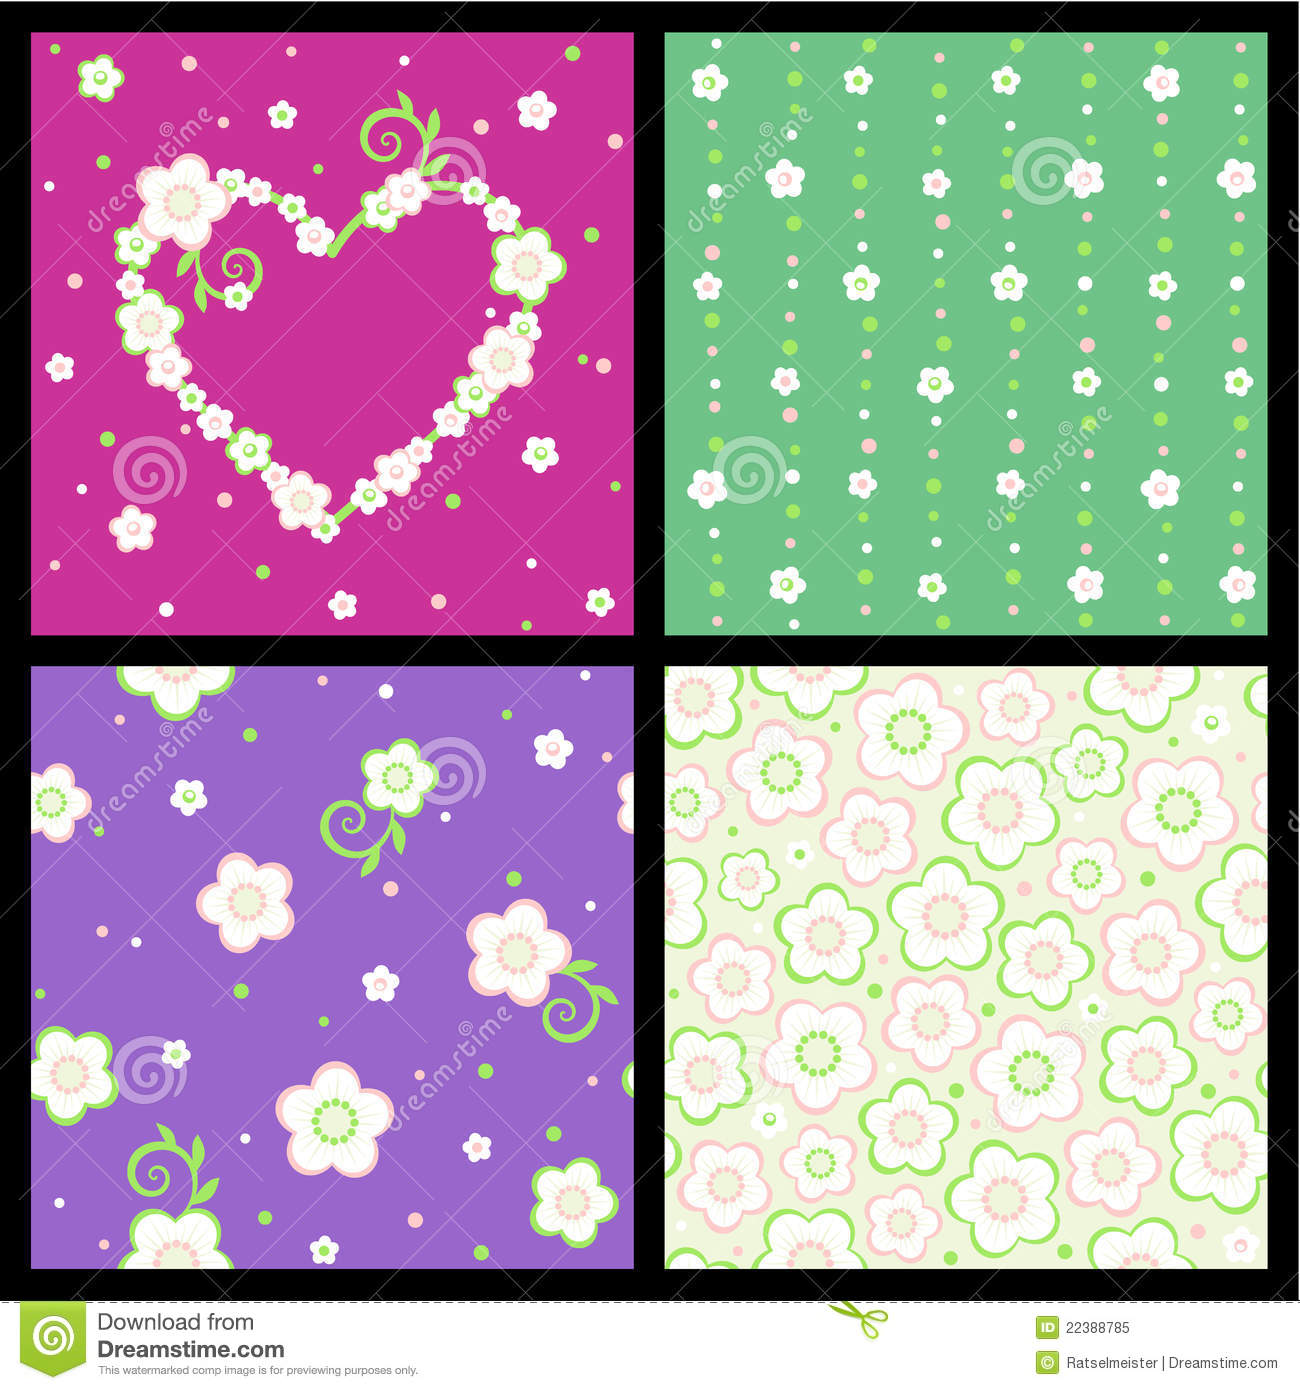 Download Seamless Spring And Valentine Floral Patterns Stock Vector - Illustration of dots, love: 22388785